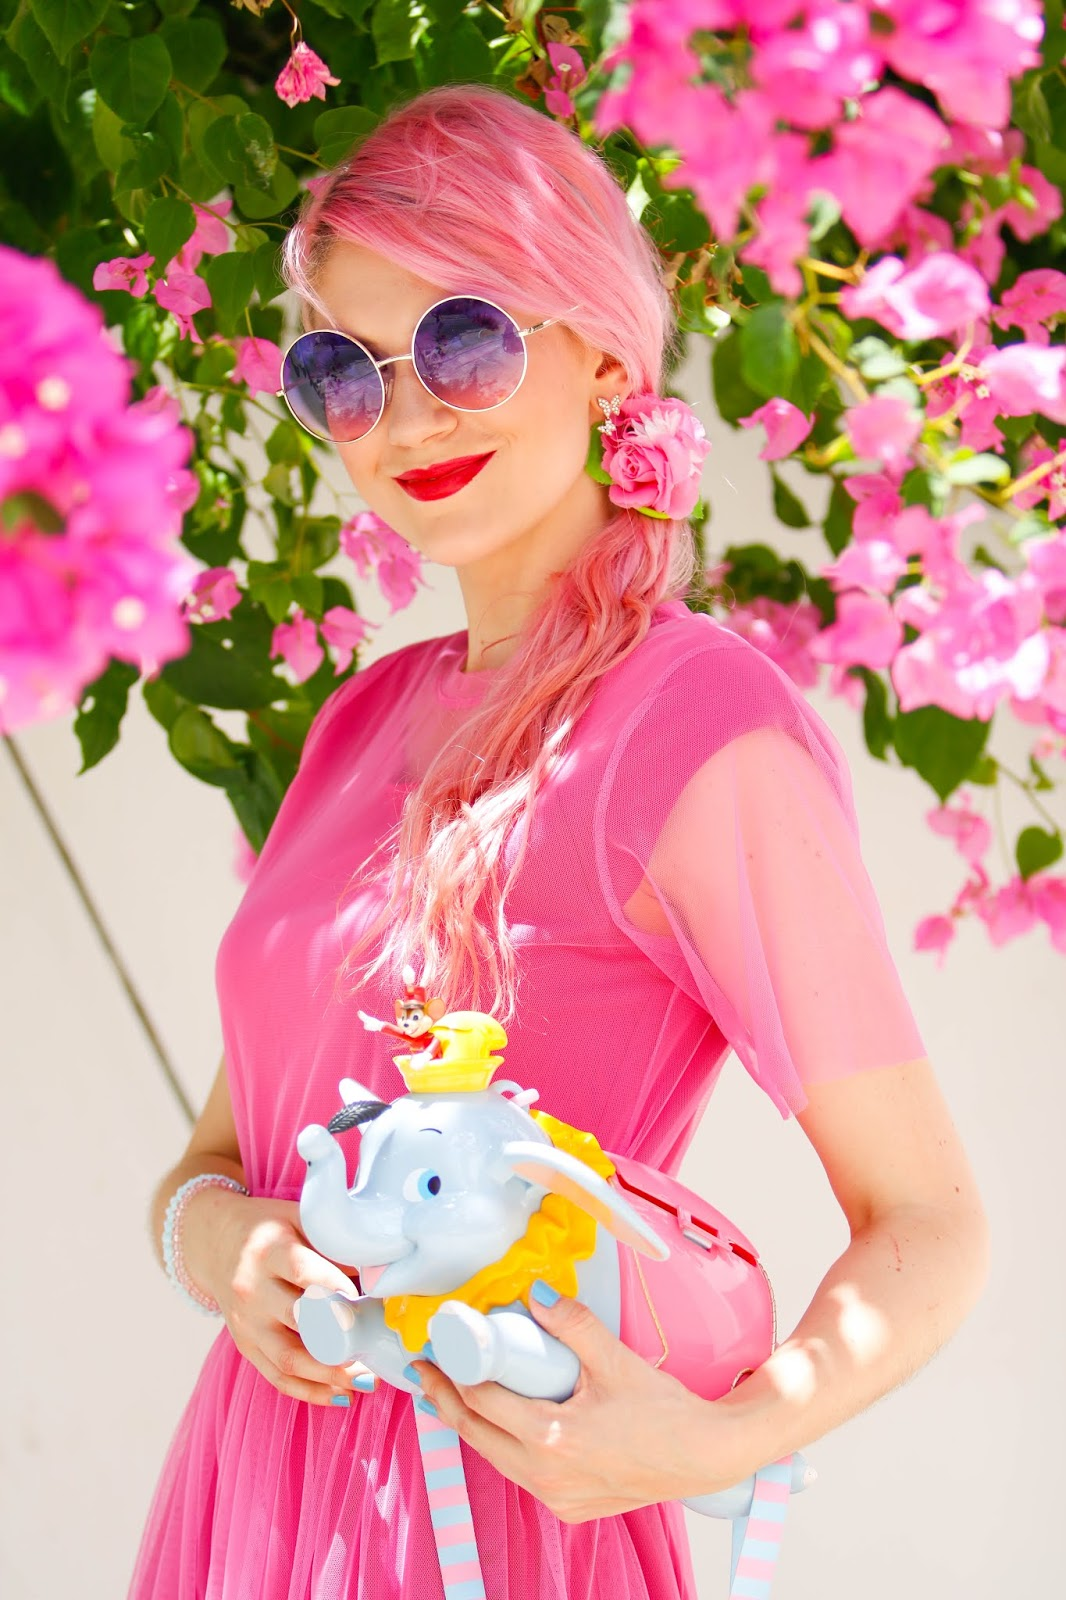 Cute Pink outfit with Dumbo popcorn bucket